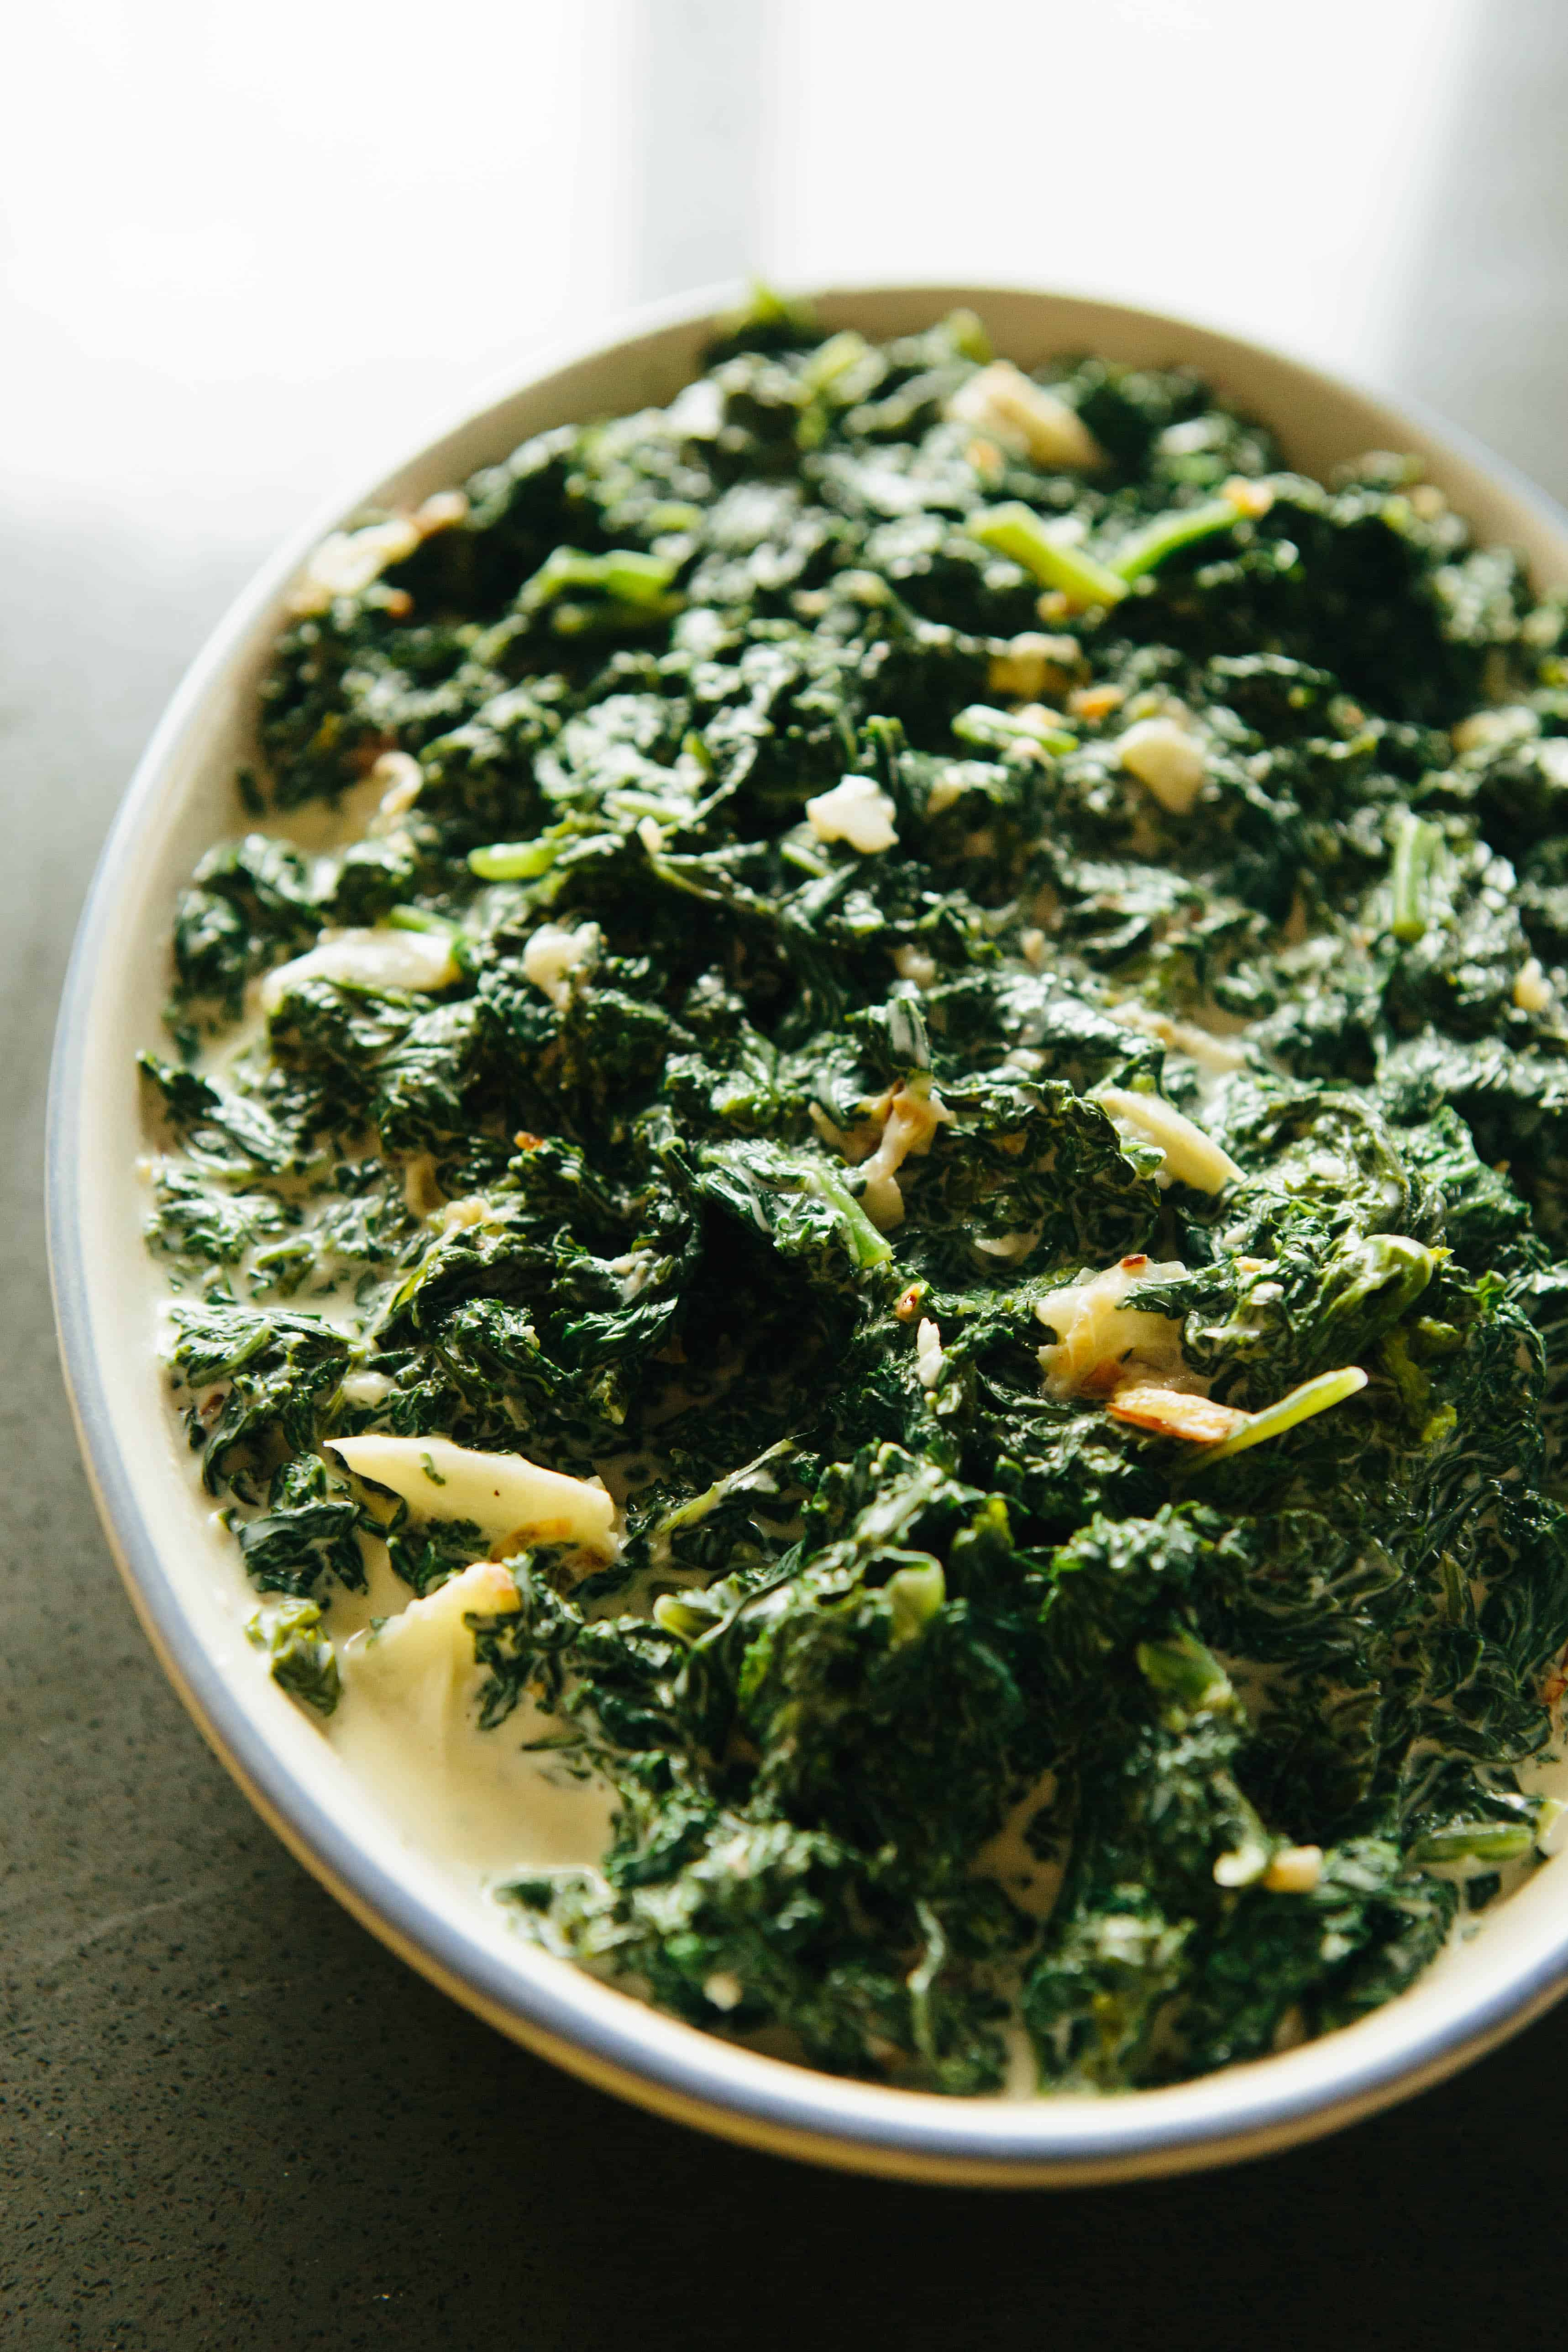 Cheesy kale gratin in a baking dish, before any topping has been added.